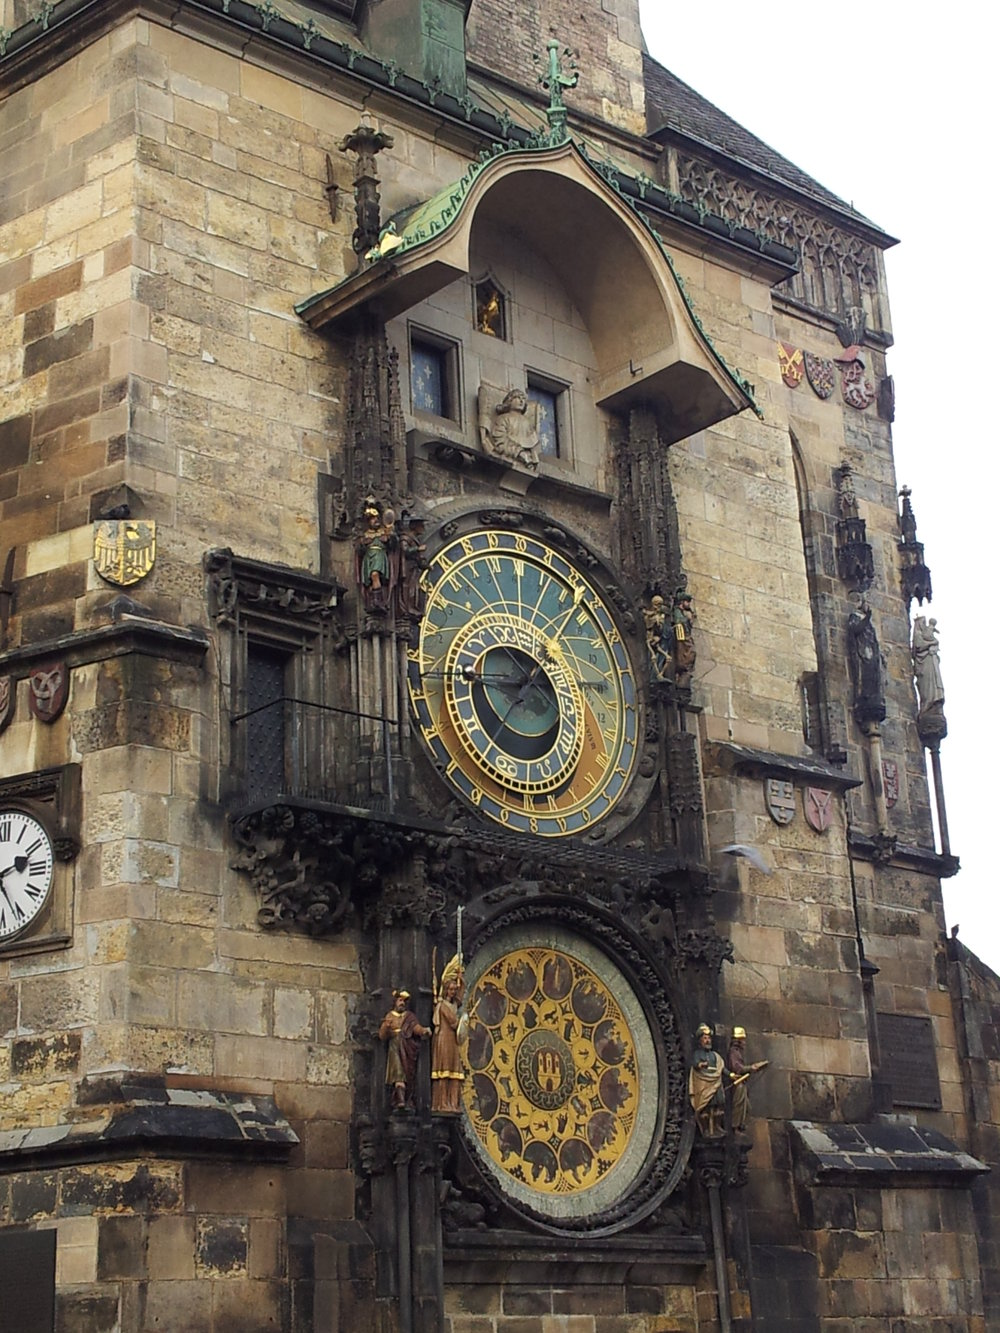 Communication is the essence of technical success - The Prague Astronomical Clock has been going for more than 600 years.